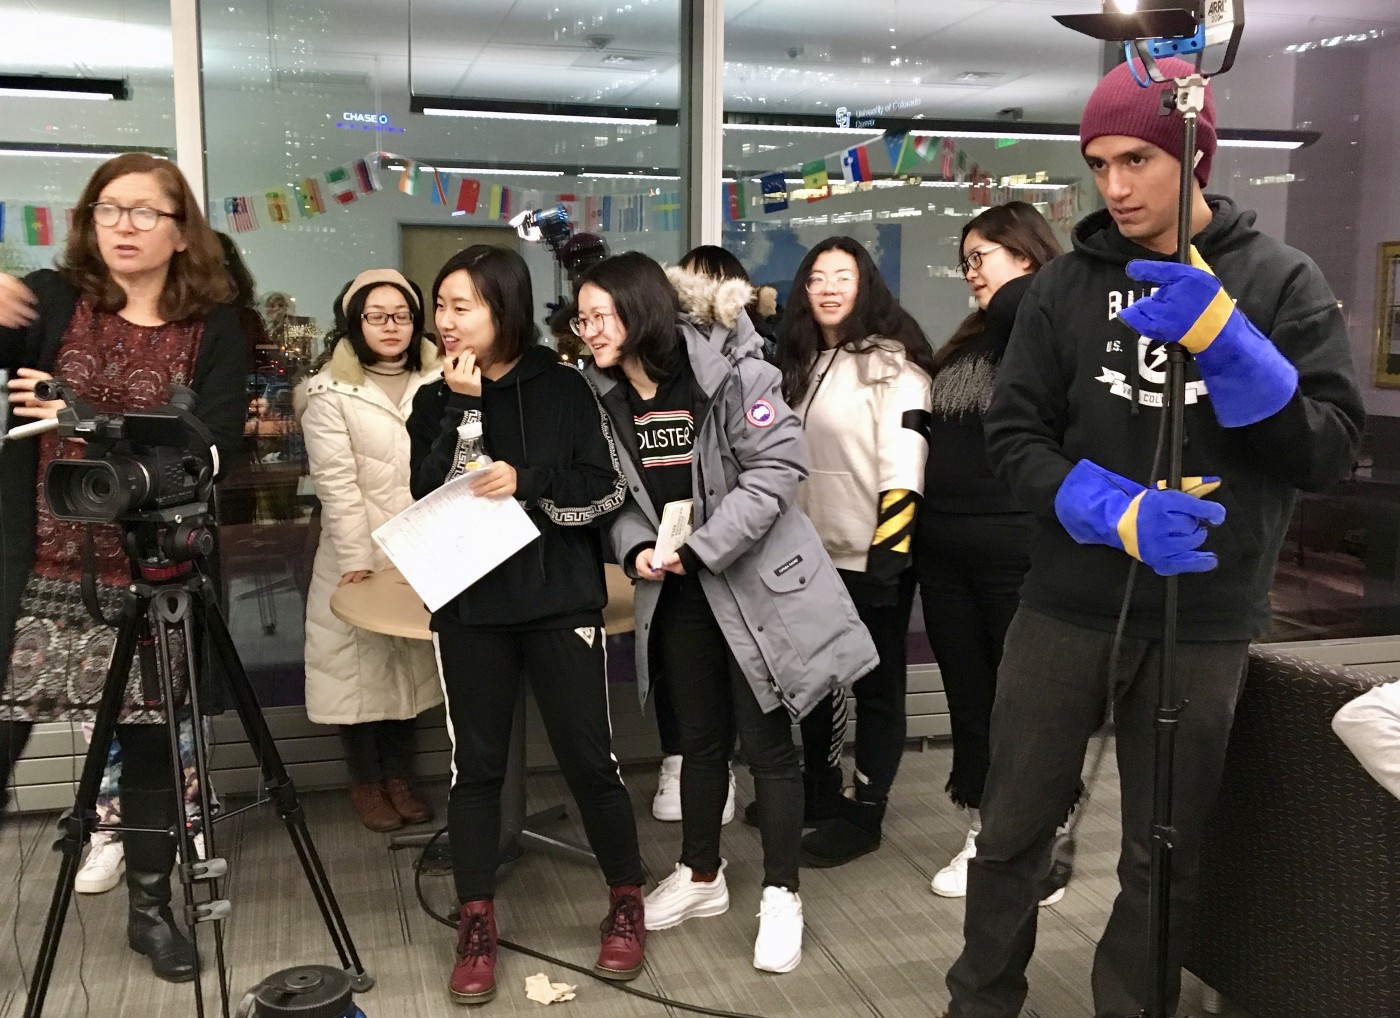 Video professional Mary Jo Brooks on the left in a classroom of University of Colorado students learning how to use professional videography equipment. The class is a diverse set of students from three different countries.